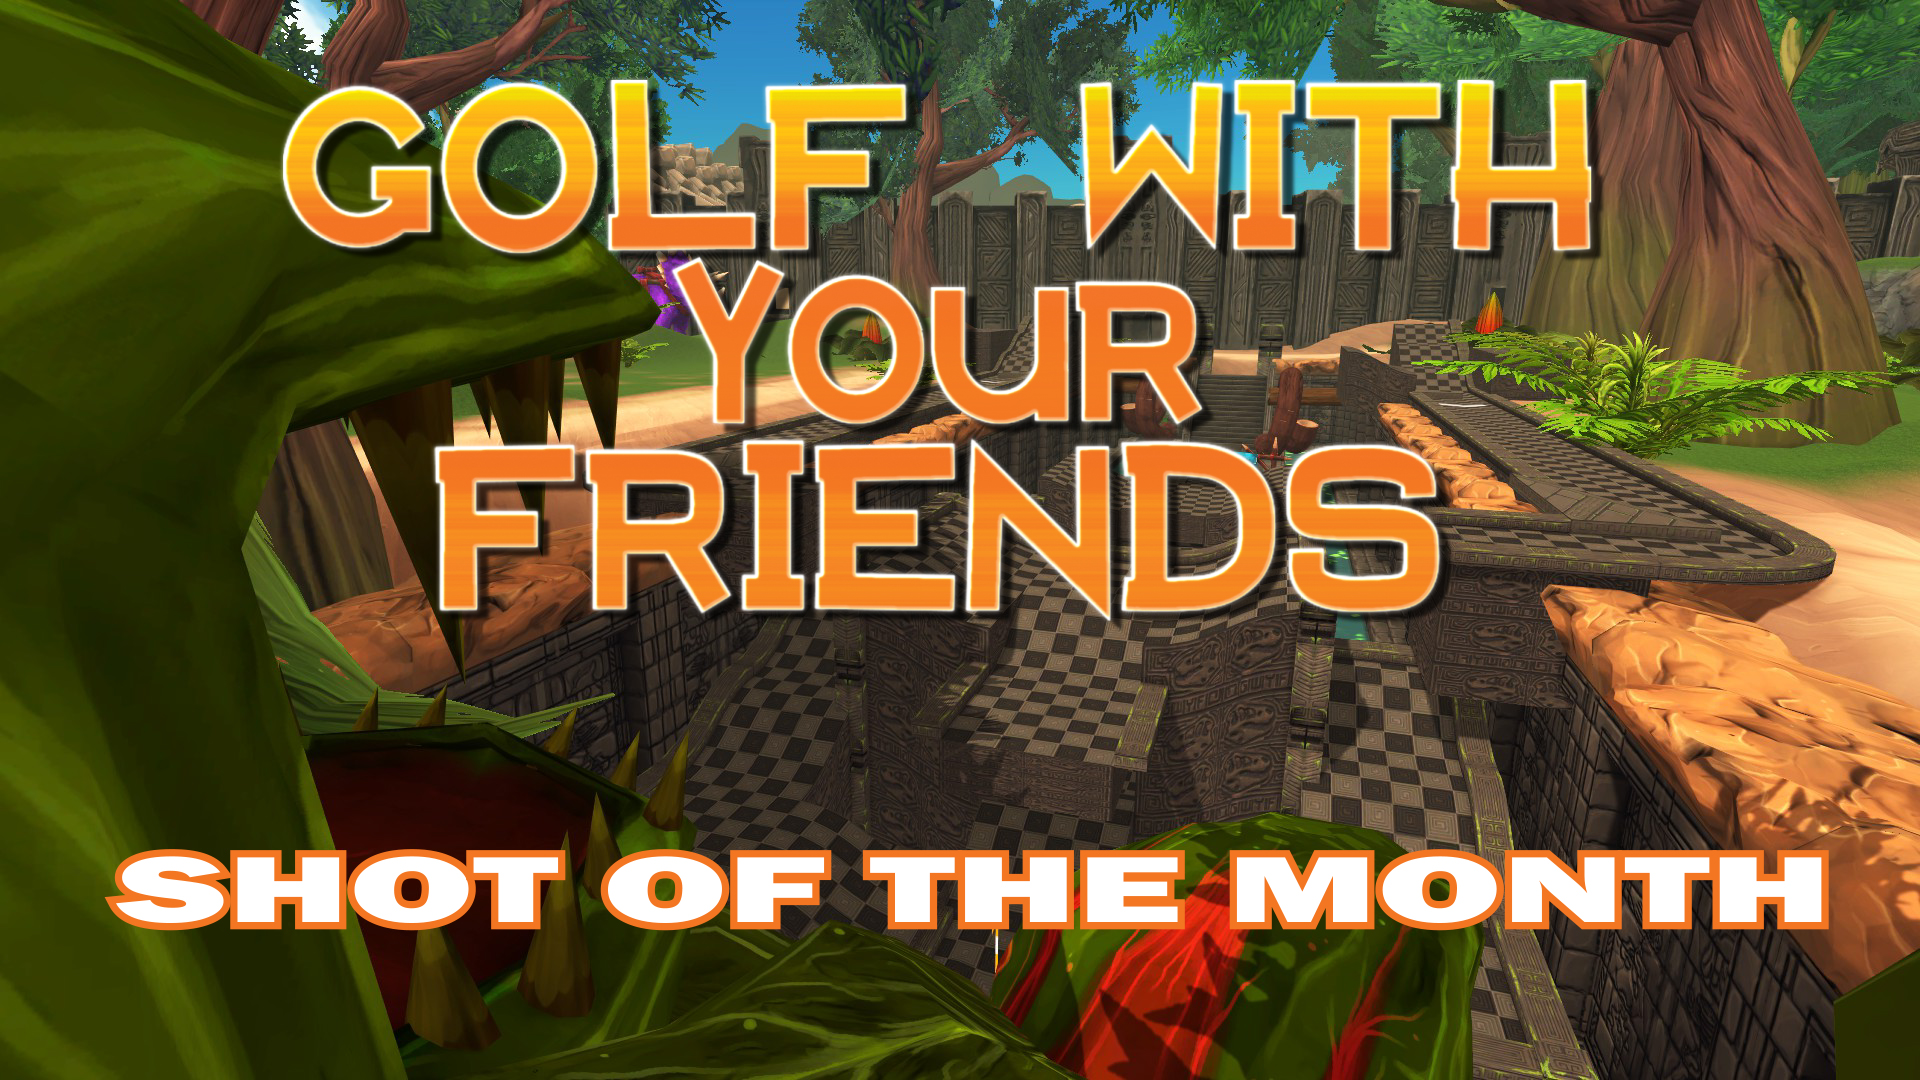 Win A Golf With Your Friends Steam Key With Our Shot Of The Month Competition